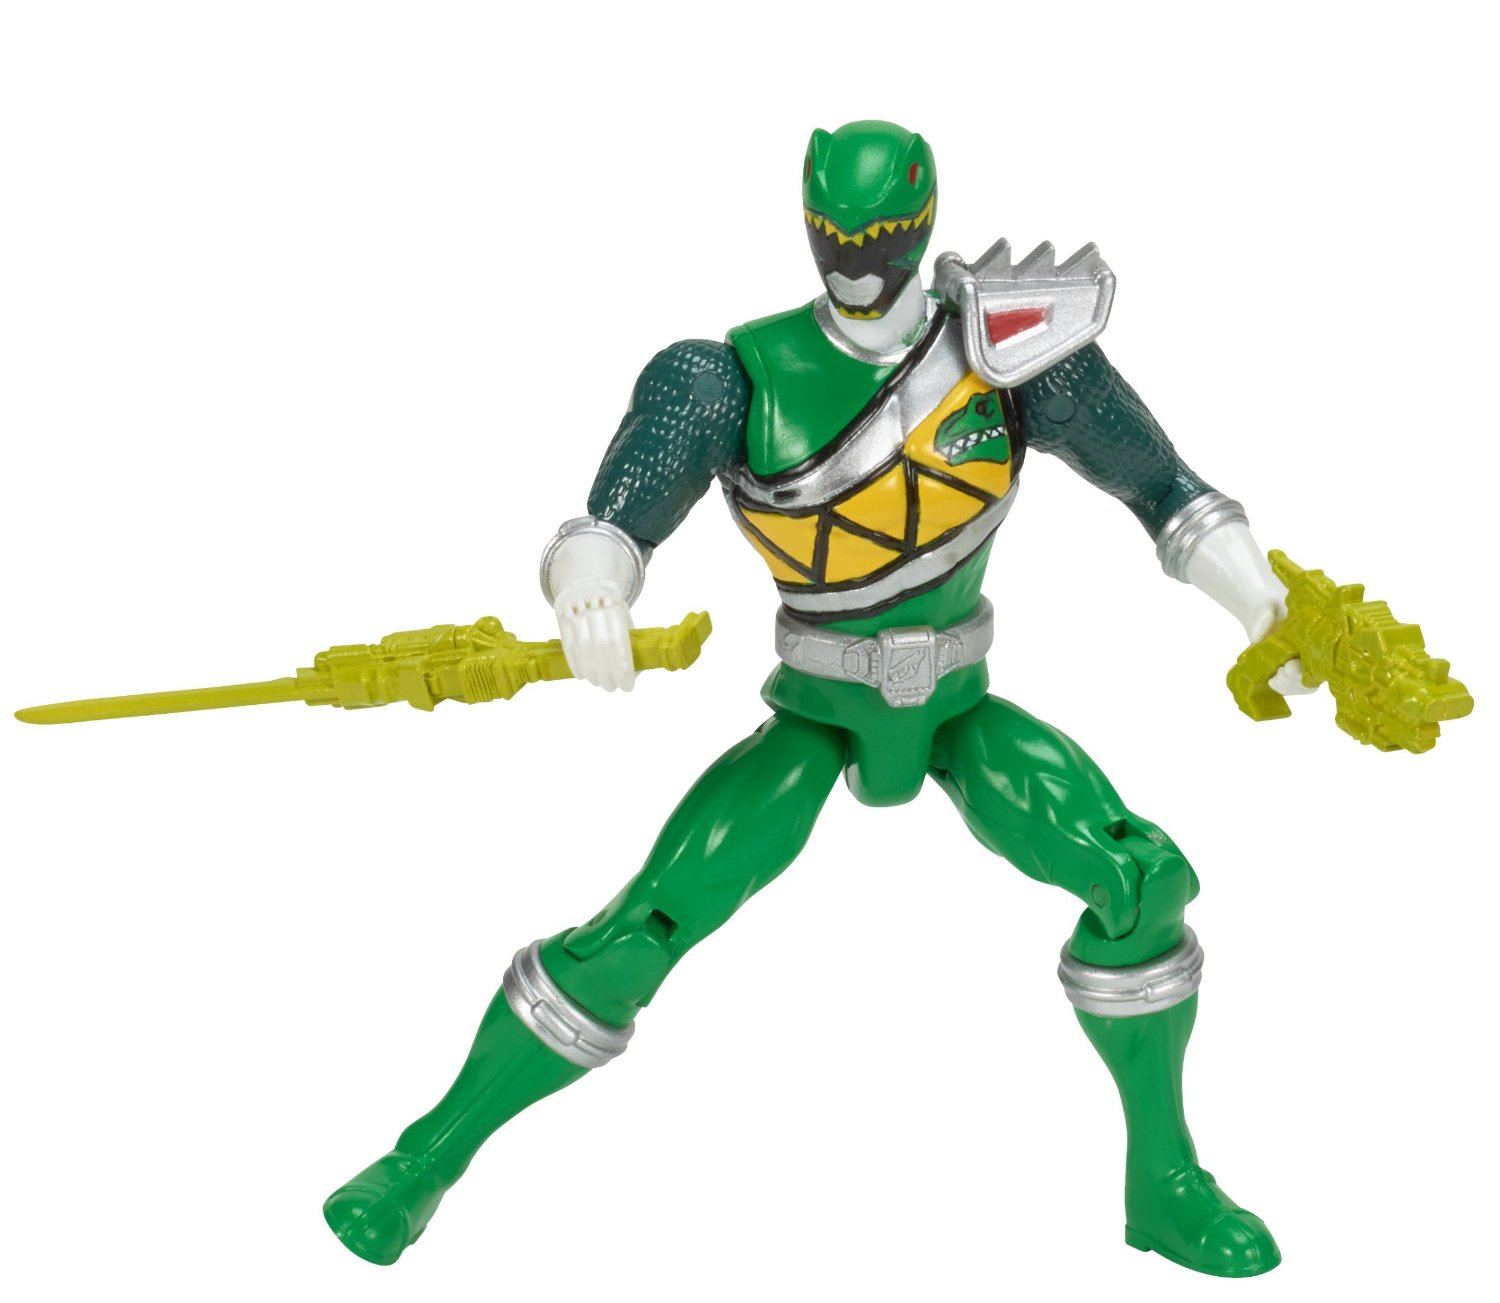 Bandai Power Rangers Dino Charge Toys - In The Playroom